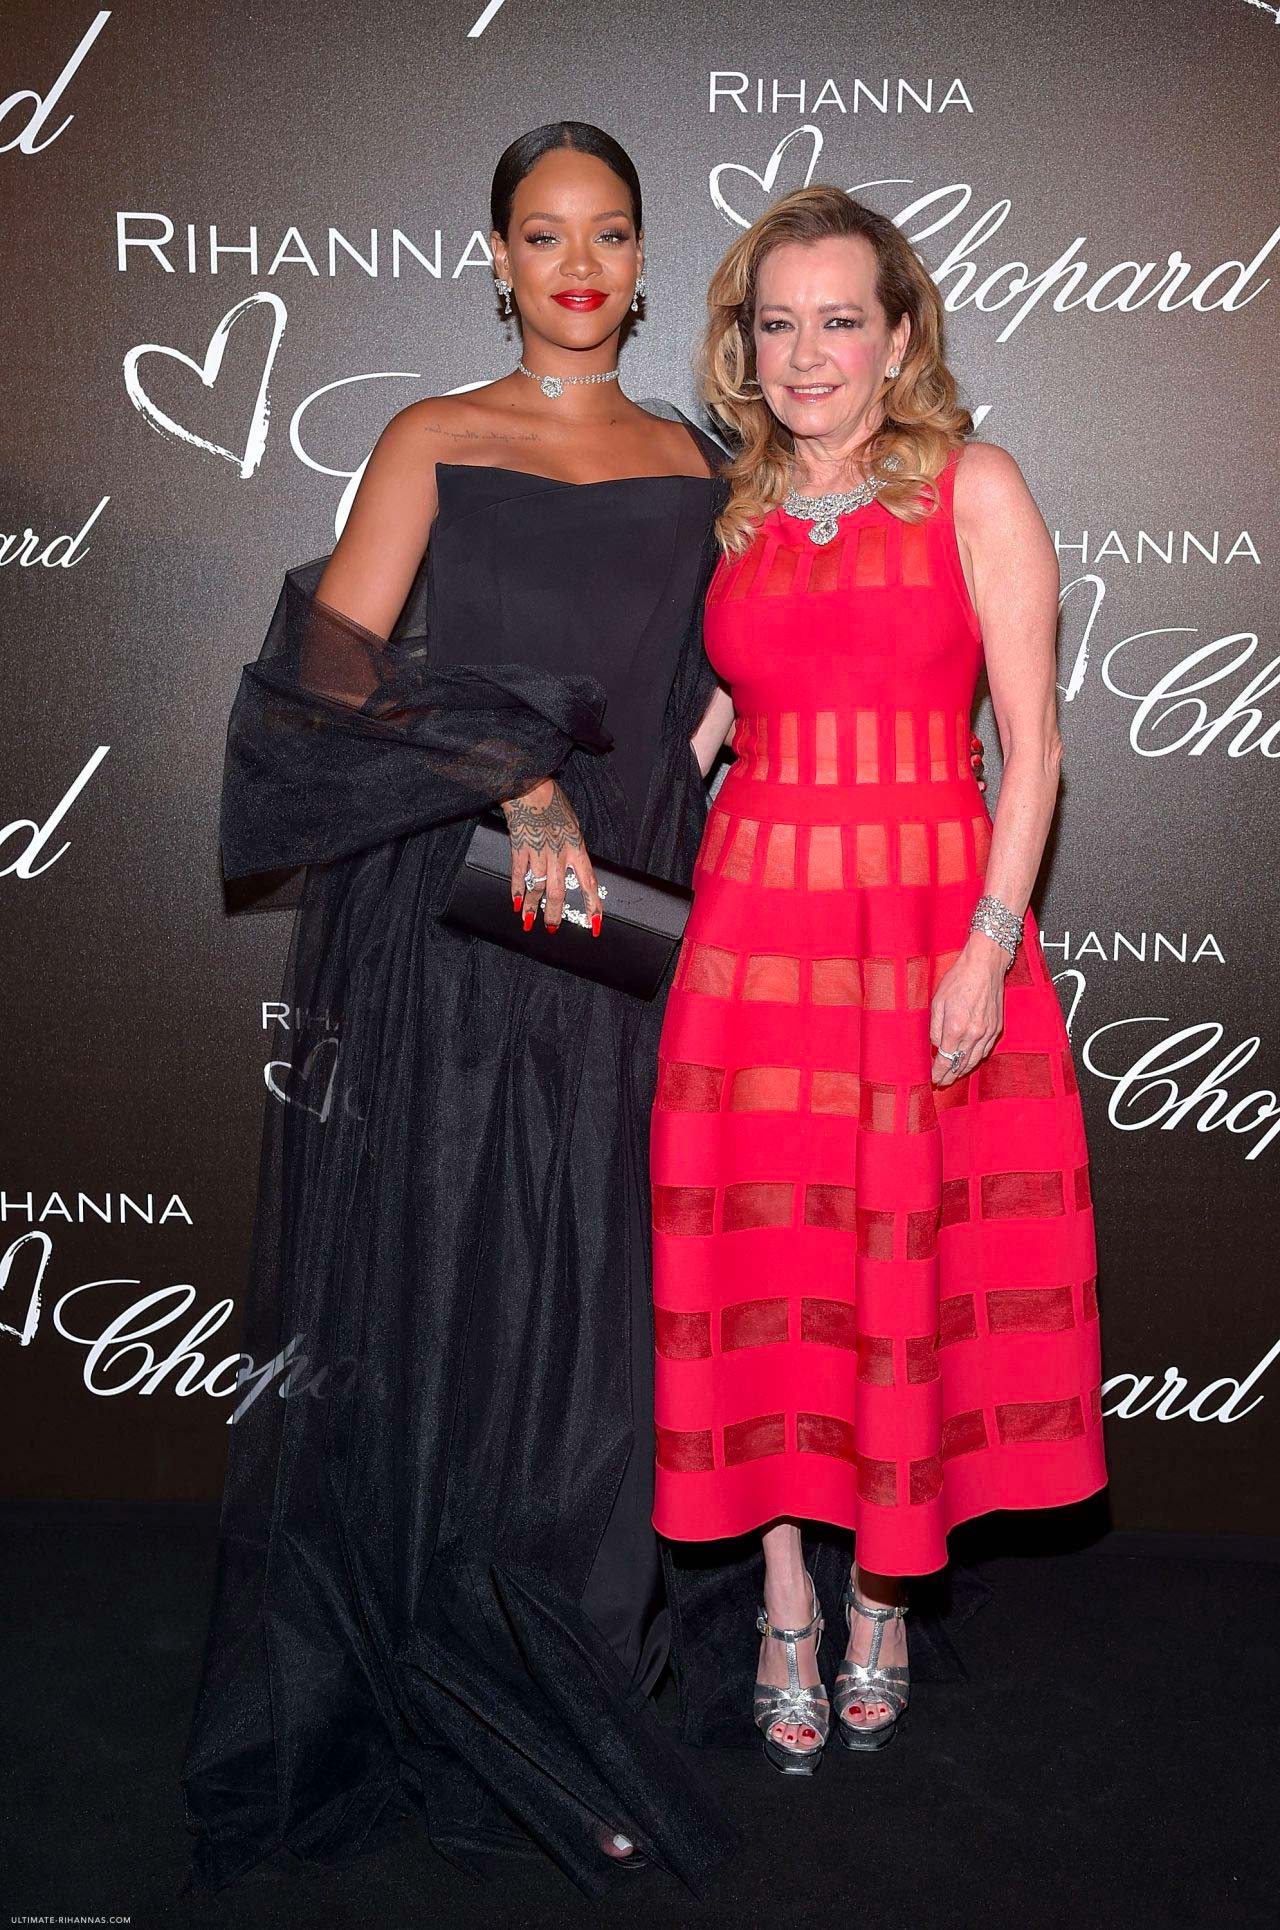 Cannes 2017 - Day 2 - Chopard & Rihanna dinner - Chopard Co-President & Creative Director Caroline Scheufele and Rihanna